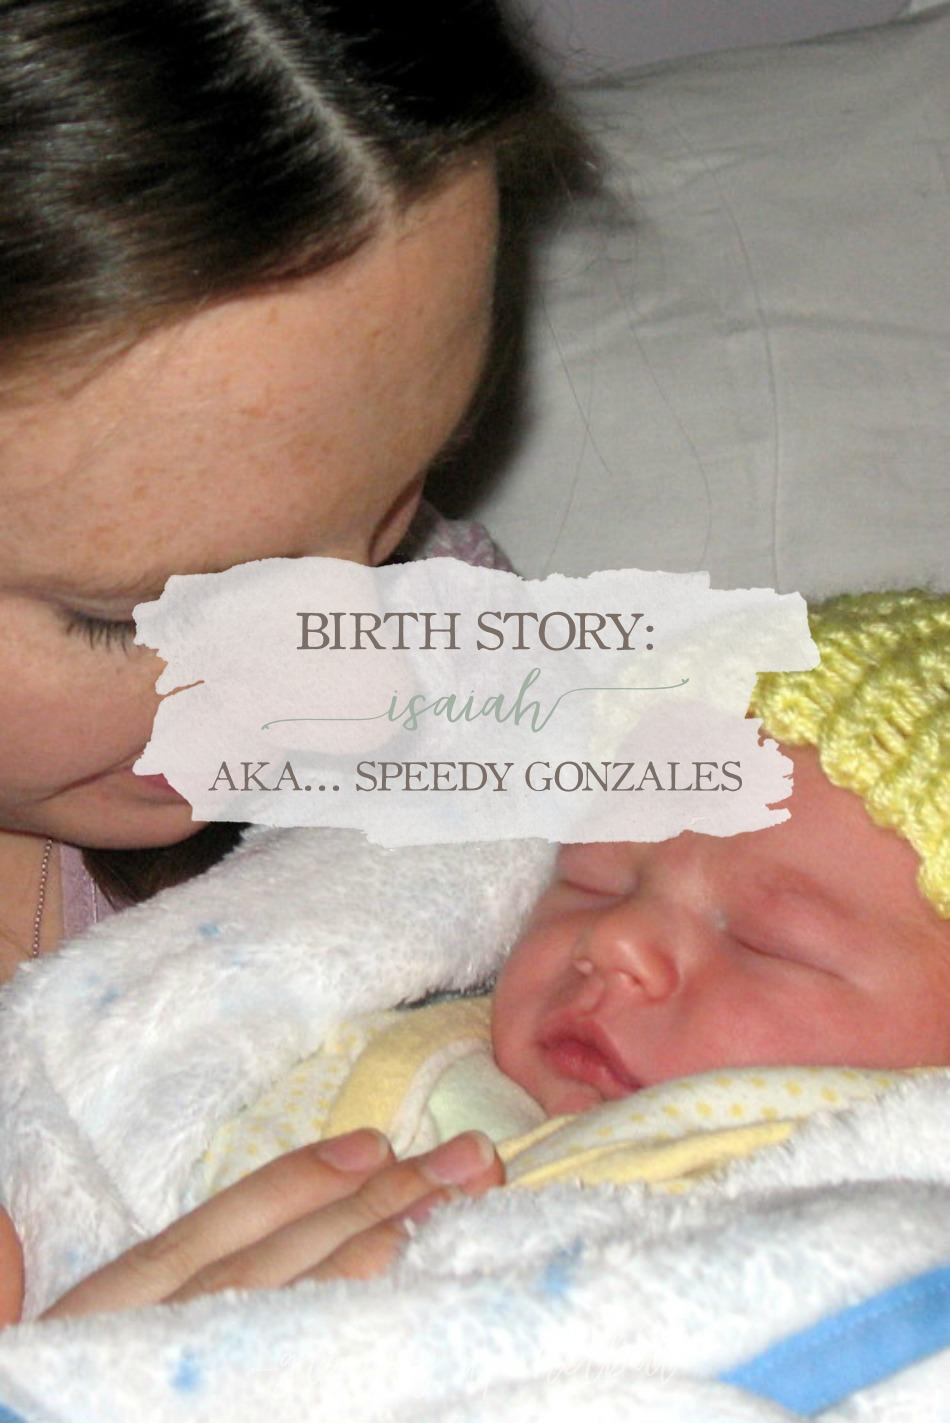 Birth Story: Isaiah - AKA... Speedy Gonzales | Growing Up Herbal | I'm sharing about the exciting birth of my second baby, Isaiah, today on the blog!